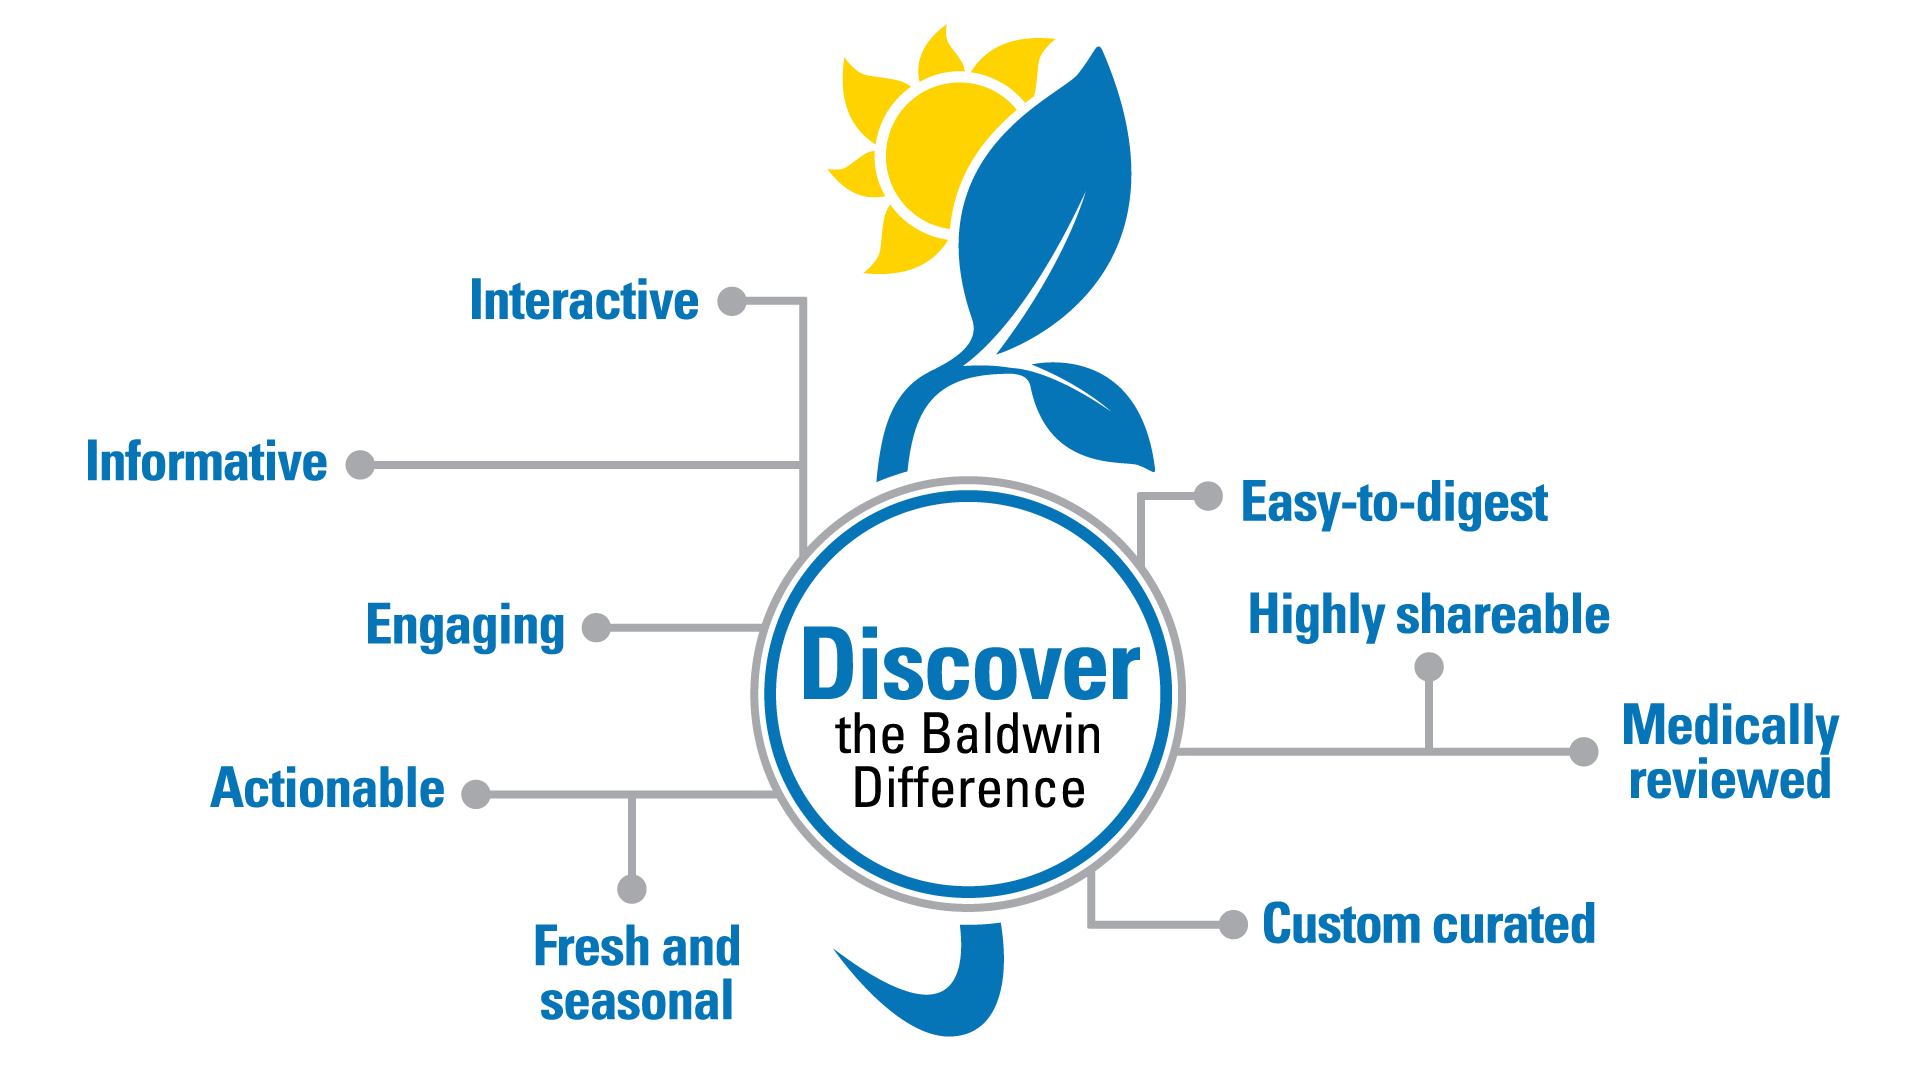 Discover the Baldwin Difference